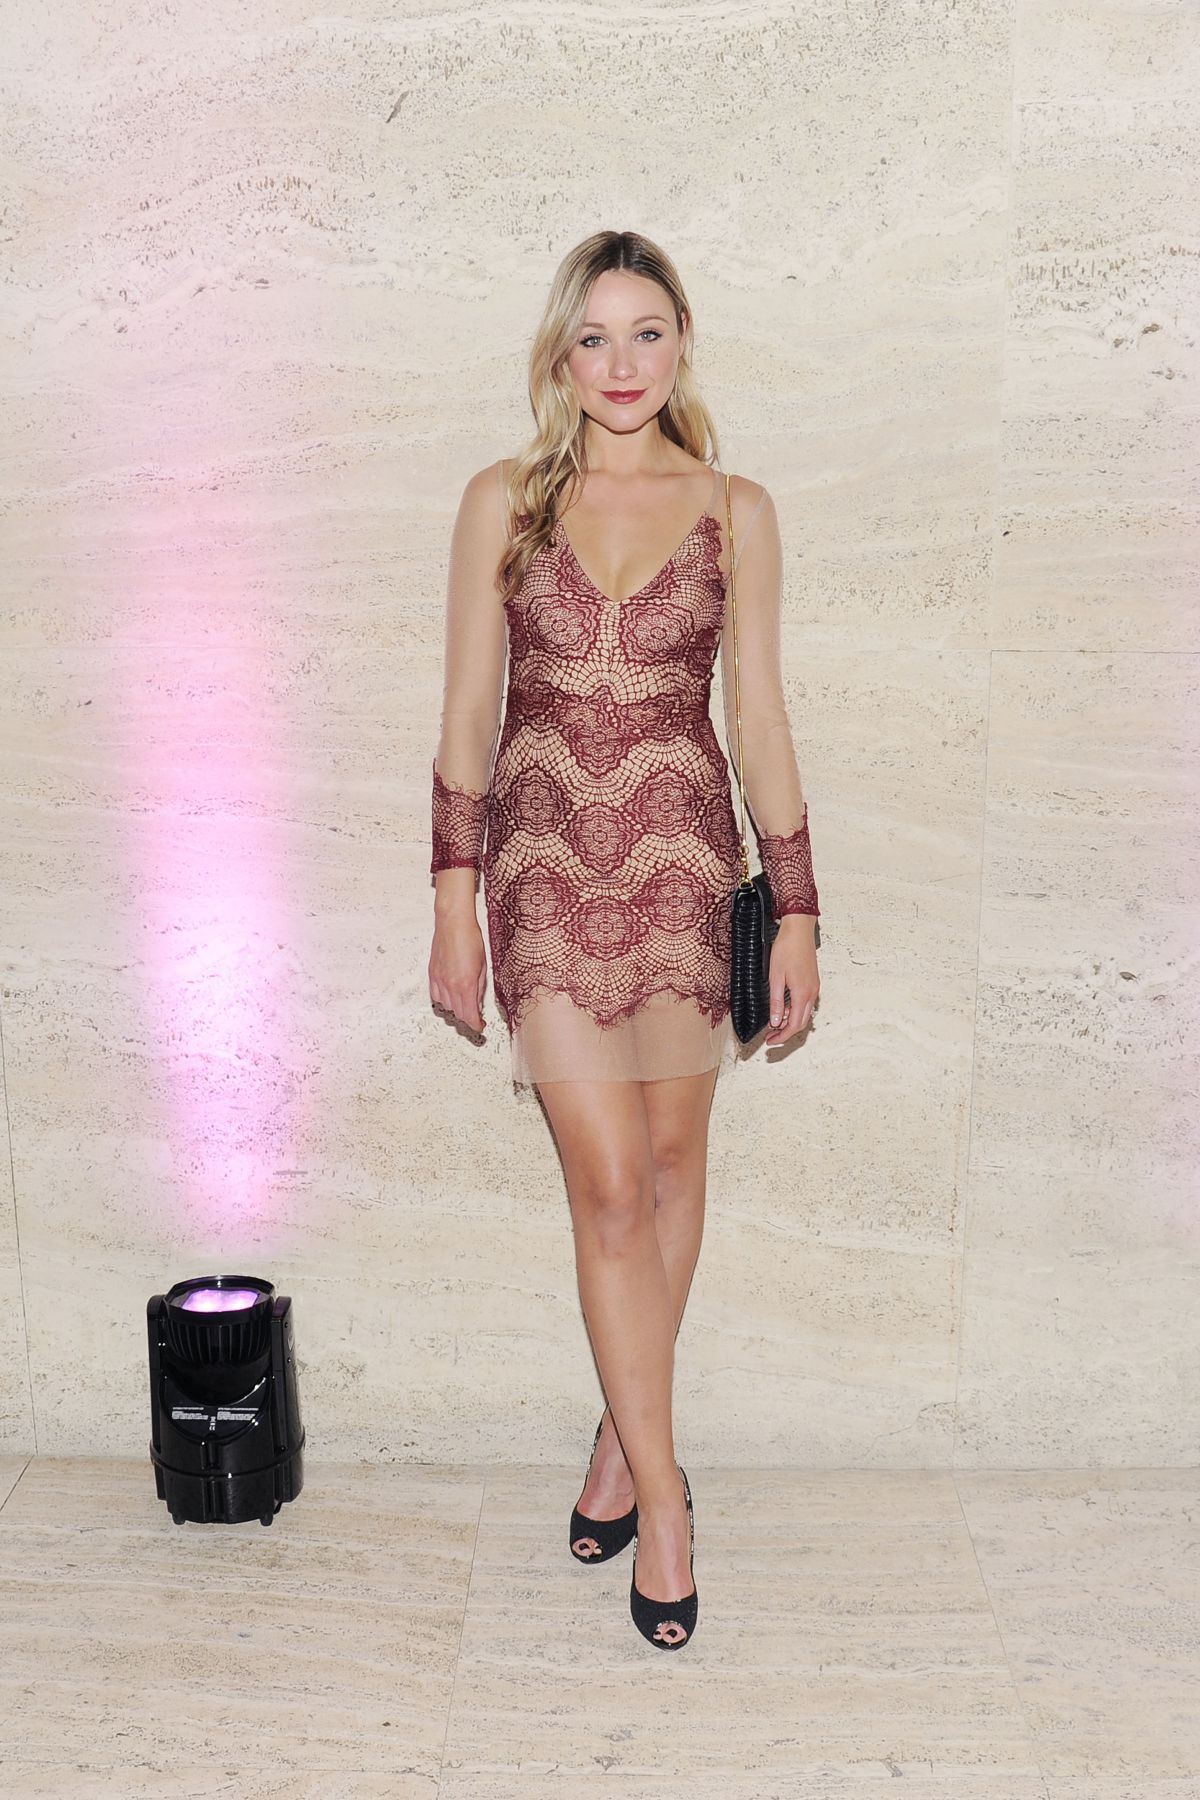 KATRINA BOWDEN at The Hollywood Reporters 35 Most Powerful People in Meadia 2015 in New York